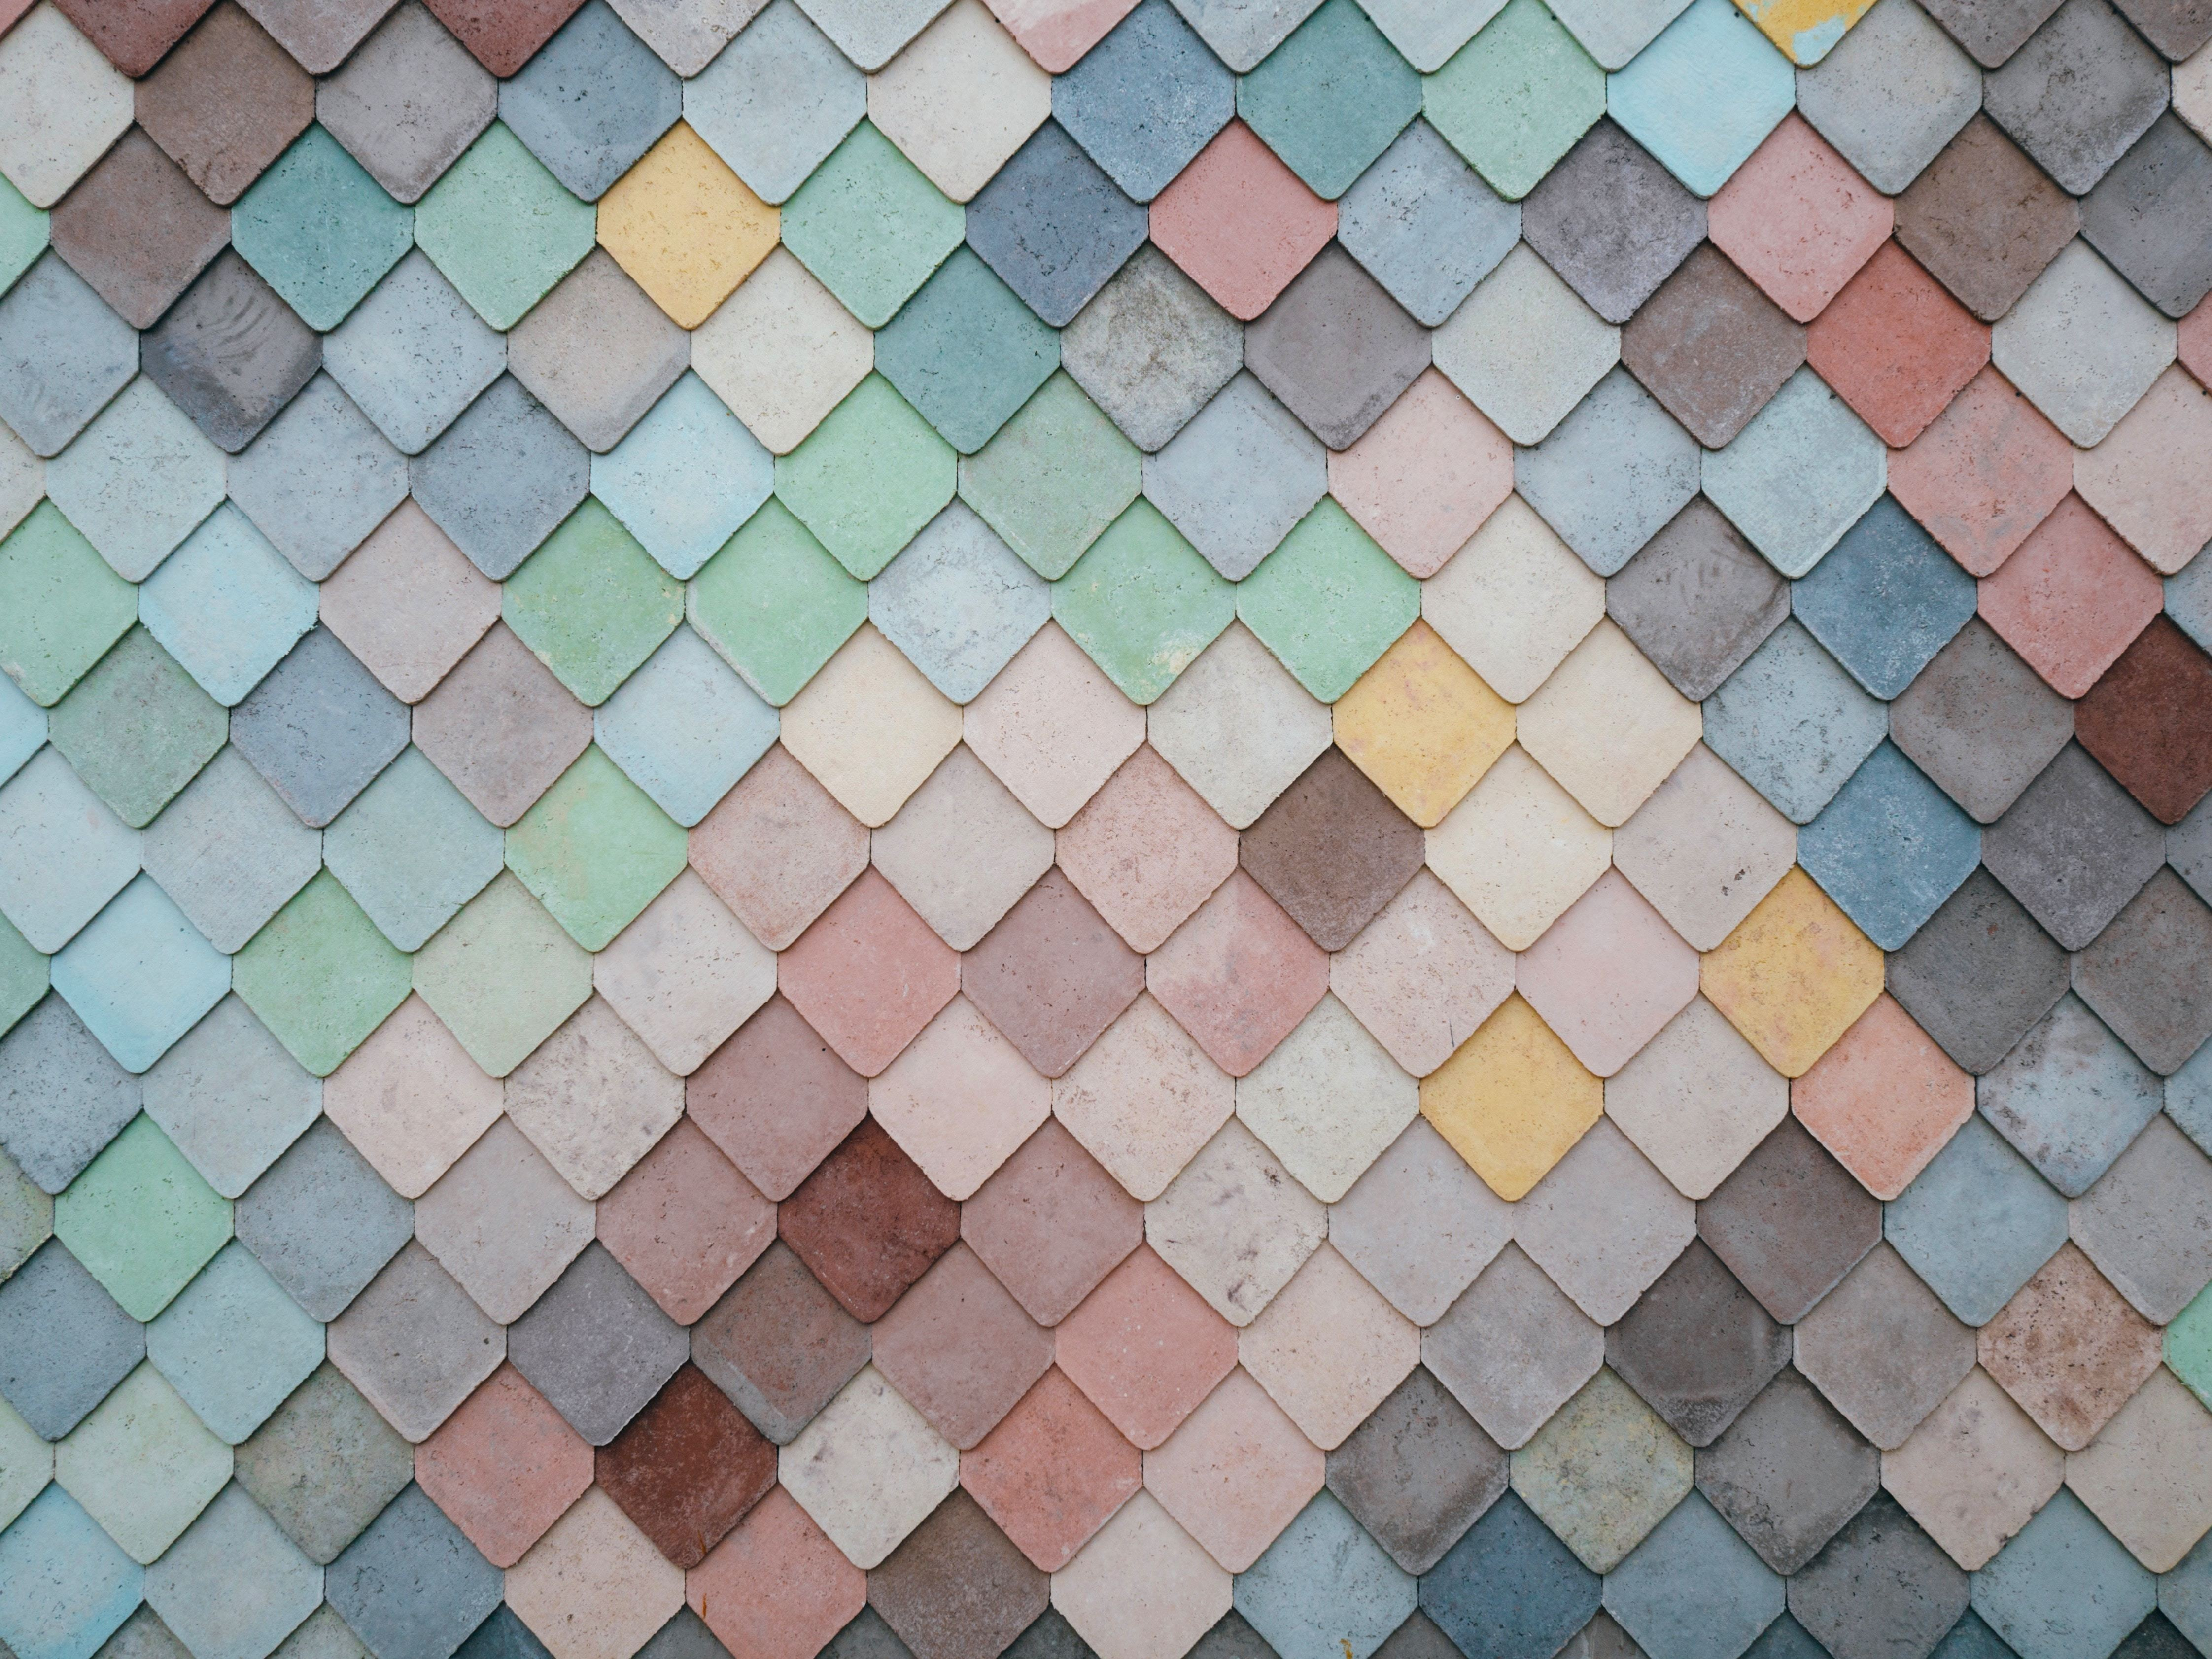 Multicoloured tiles making a pattern